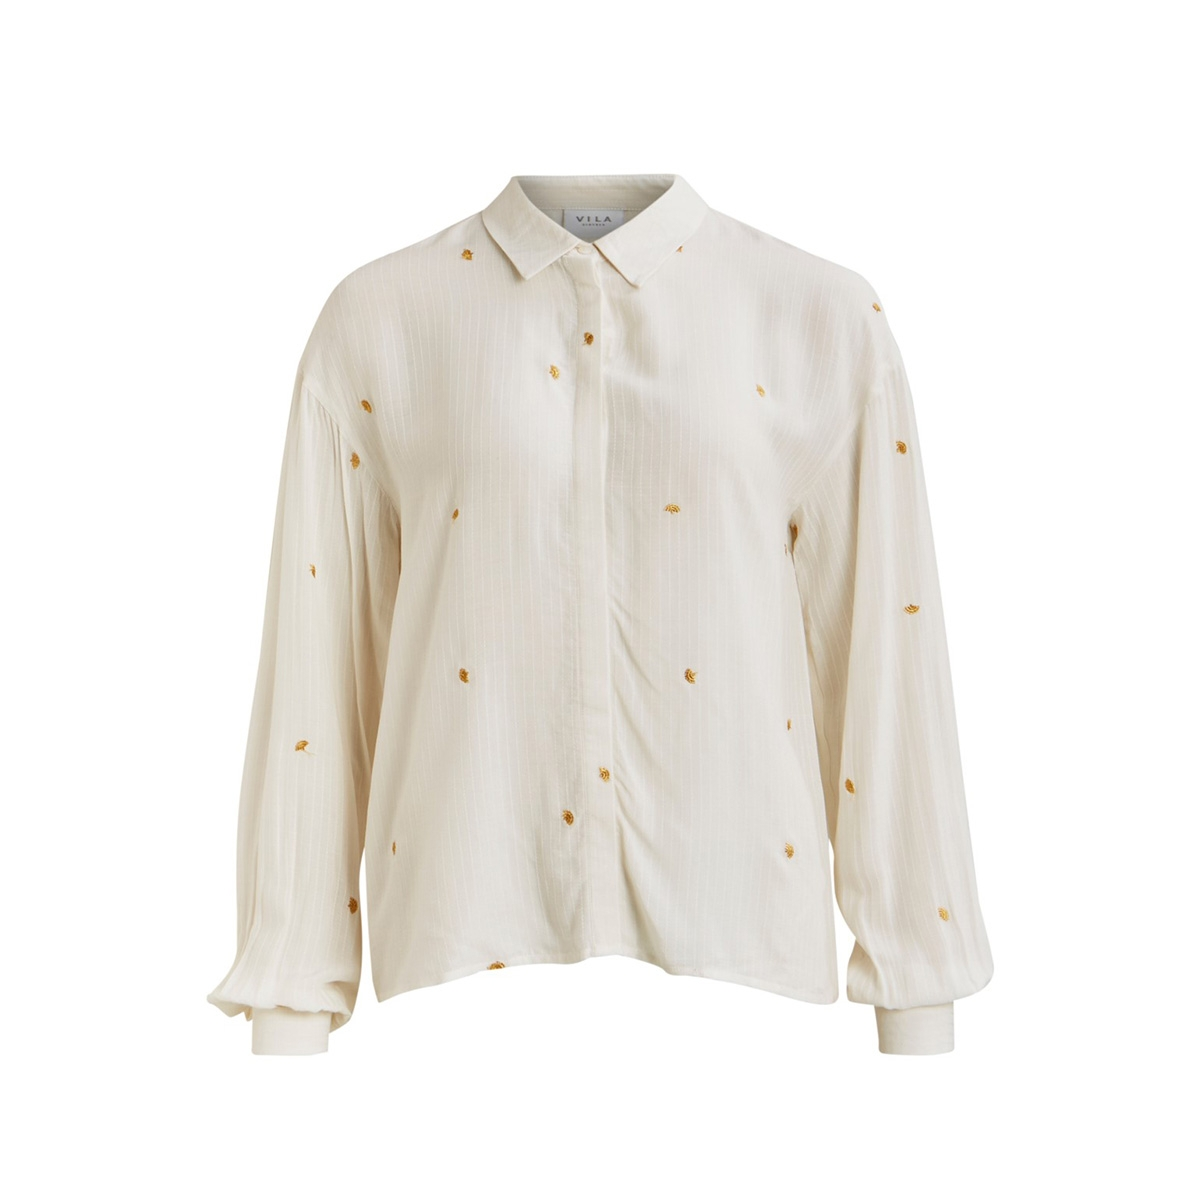 vipeppa embrodery l/s shirt c9 14056628 vila blouse snow white/embroidery